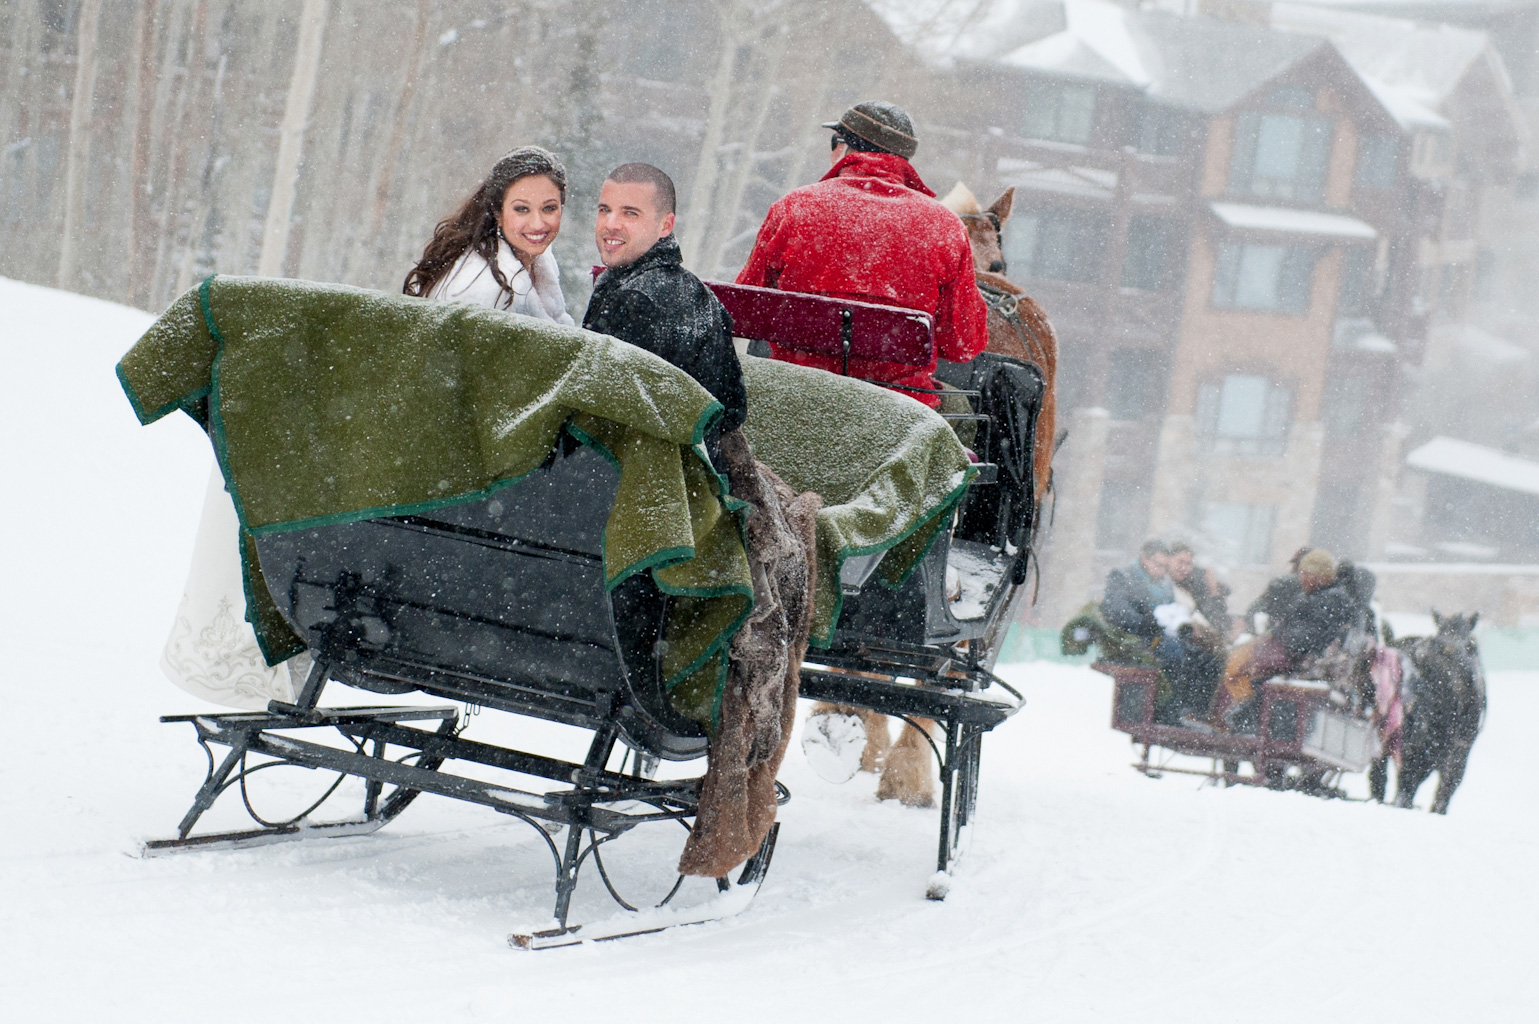 Bride and groom in horse drawn sleigh in snow